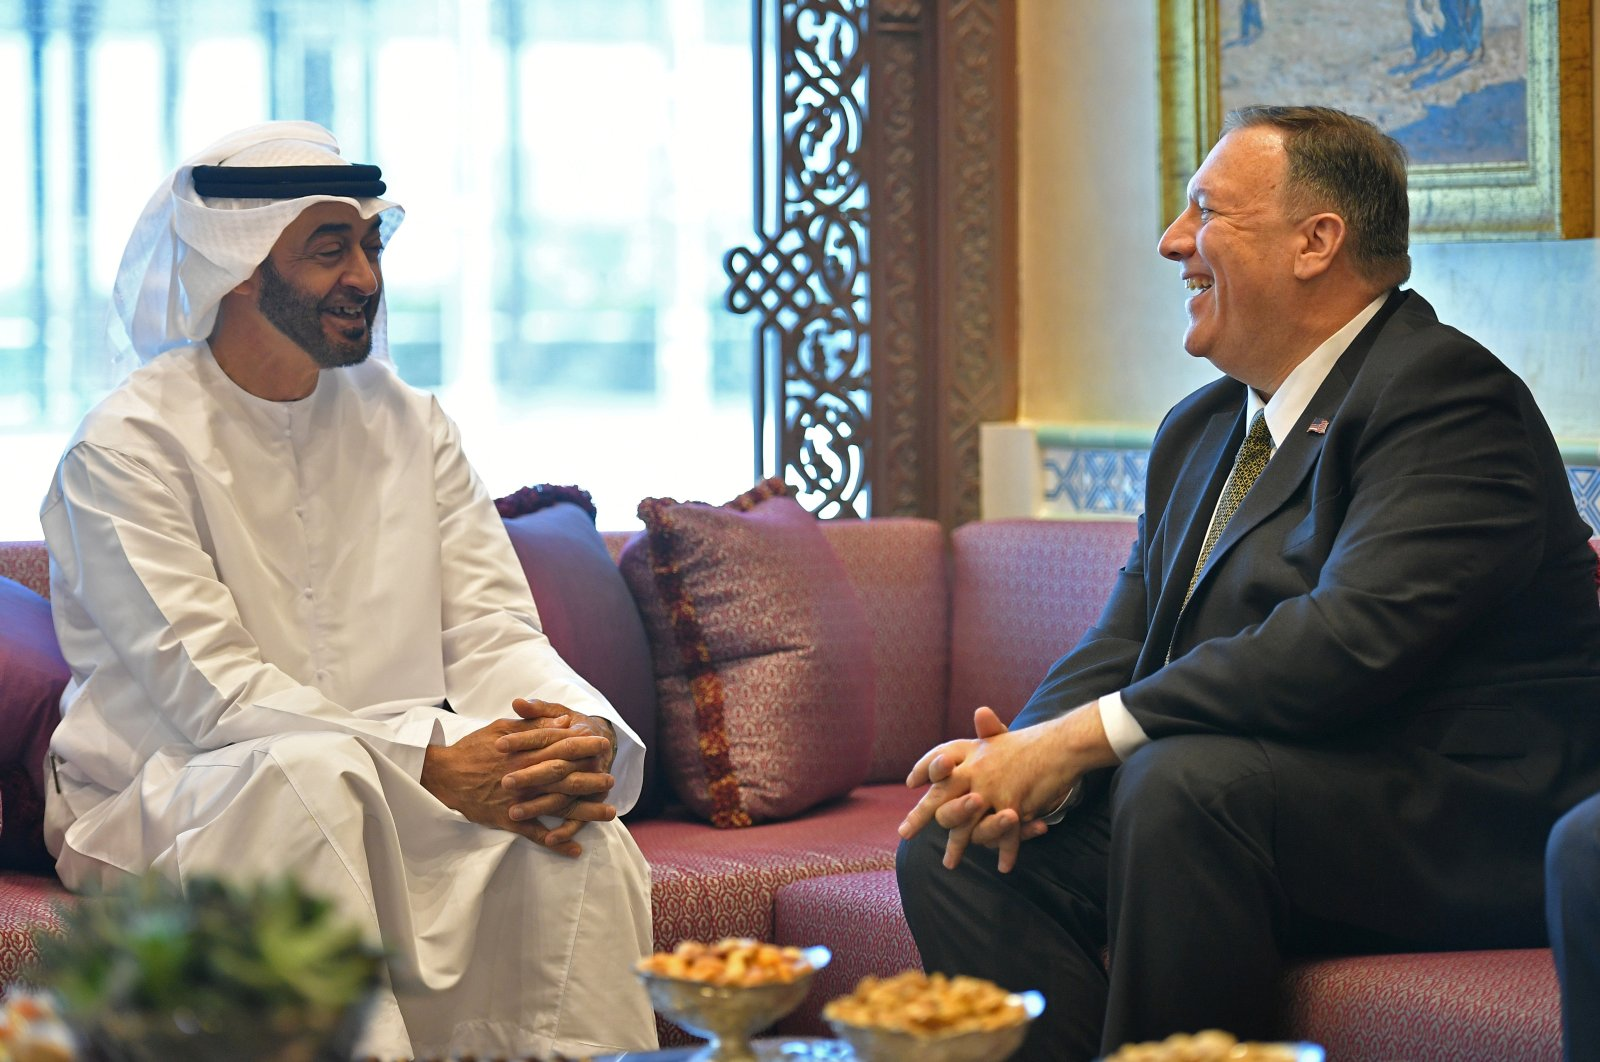 U.S. Secretary of State Mike Pompeo takes part in a meeting with Abu Dhabi Crown Prince Mohammed bin Zayed in Abu Dhabi, United Arab Emirates, Sept. 19, 2019. (Reuters Photo)